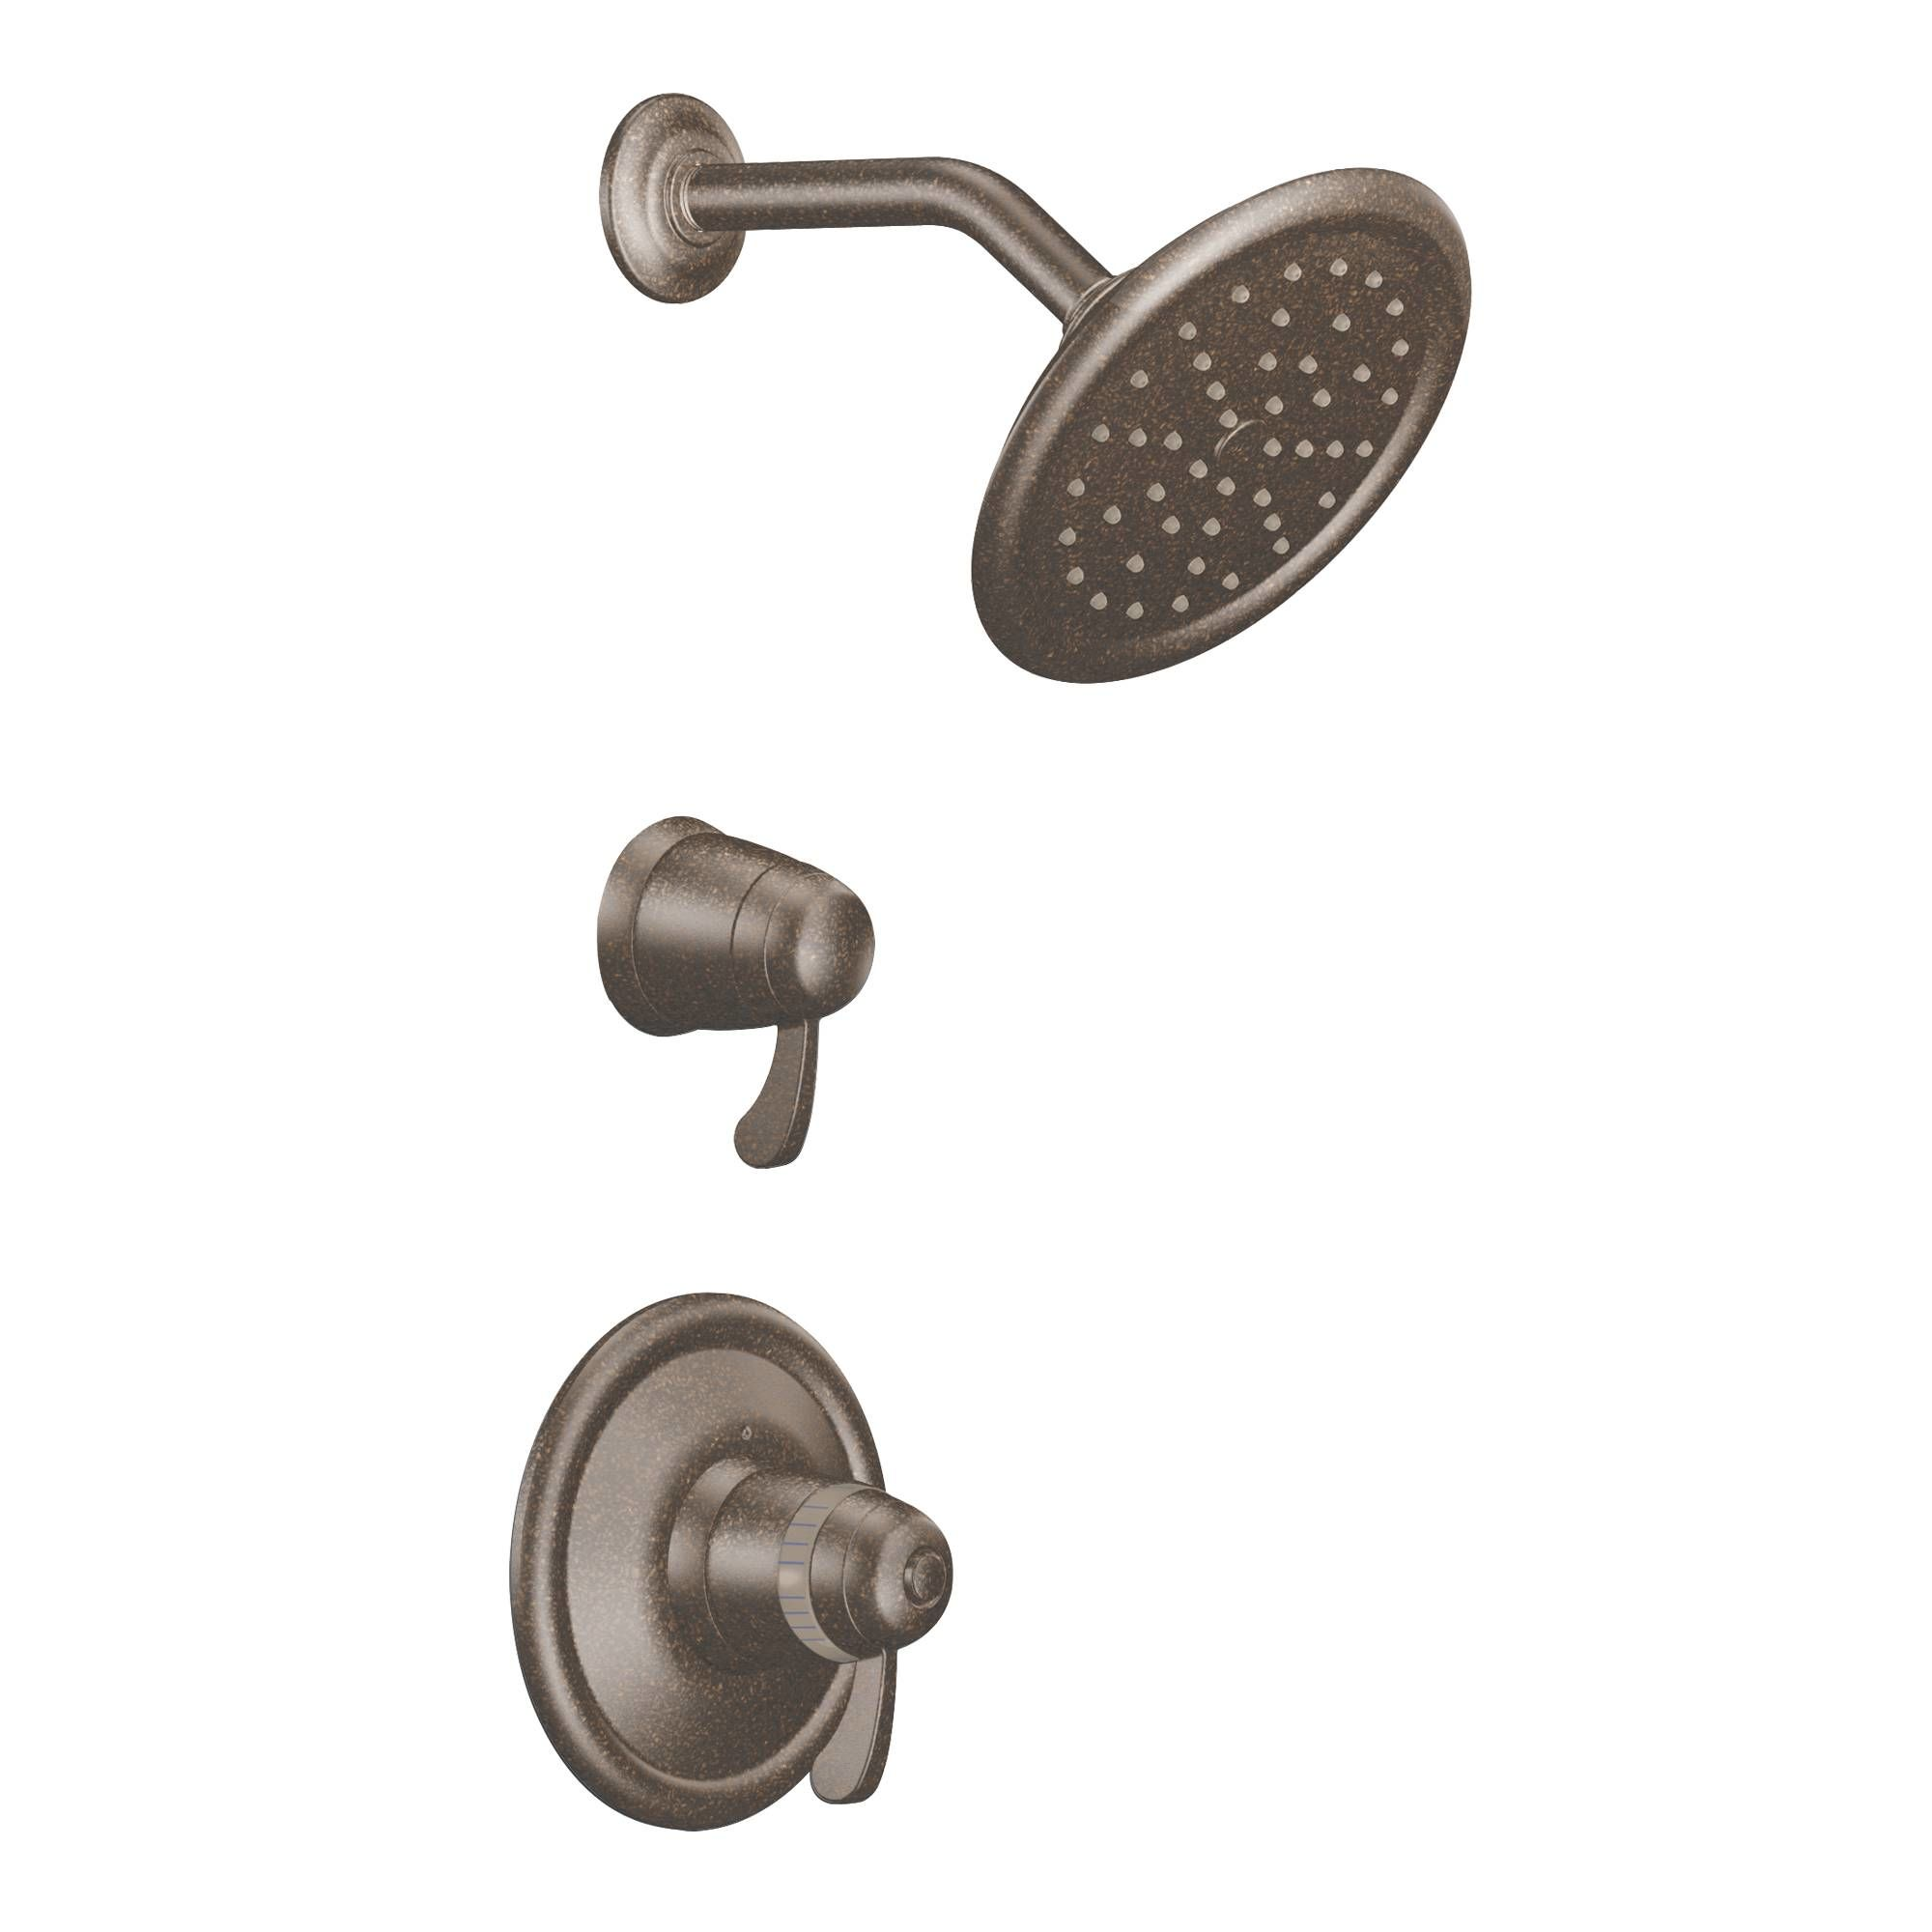 Moen 770BN Brushed Nickel Thermostatic Shower System with Shower ...